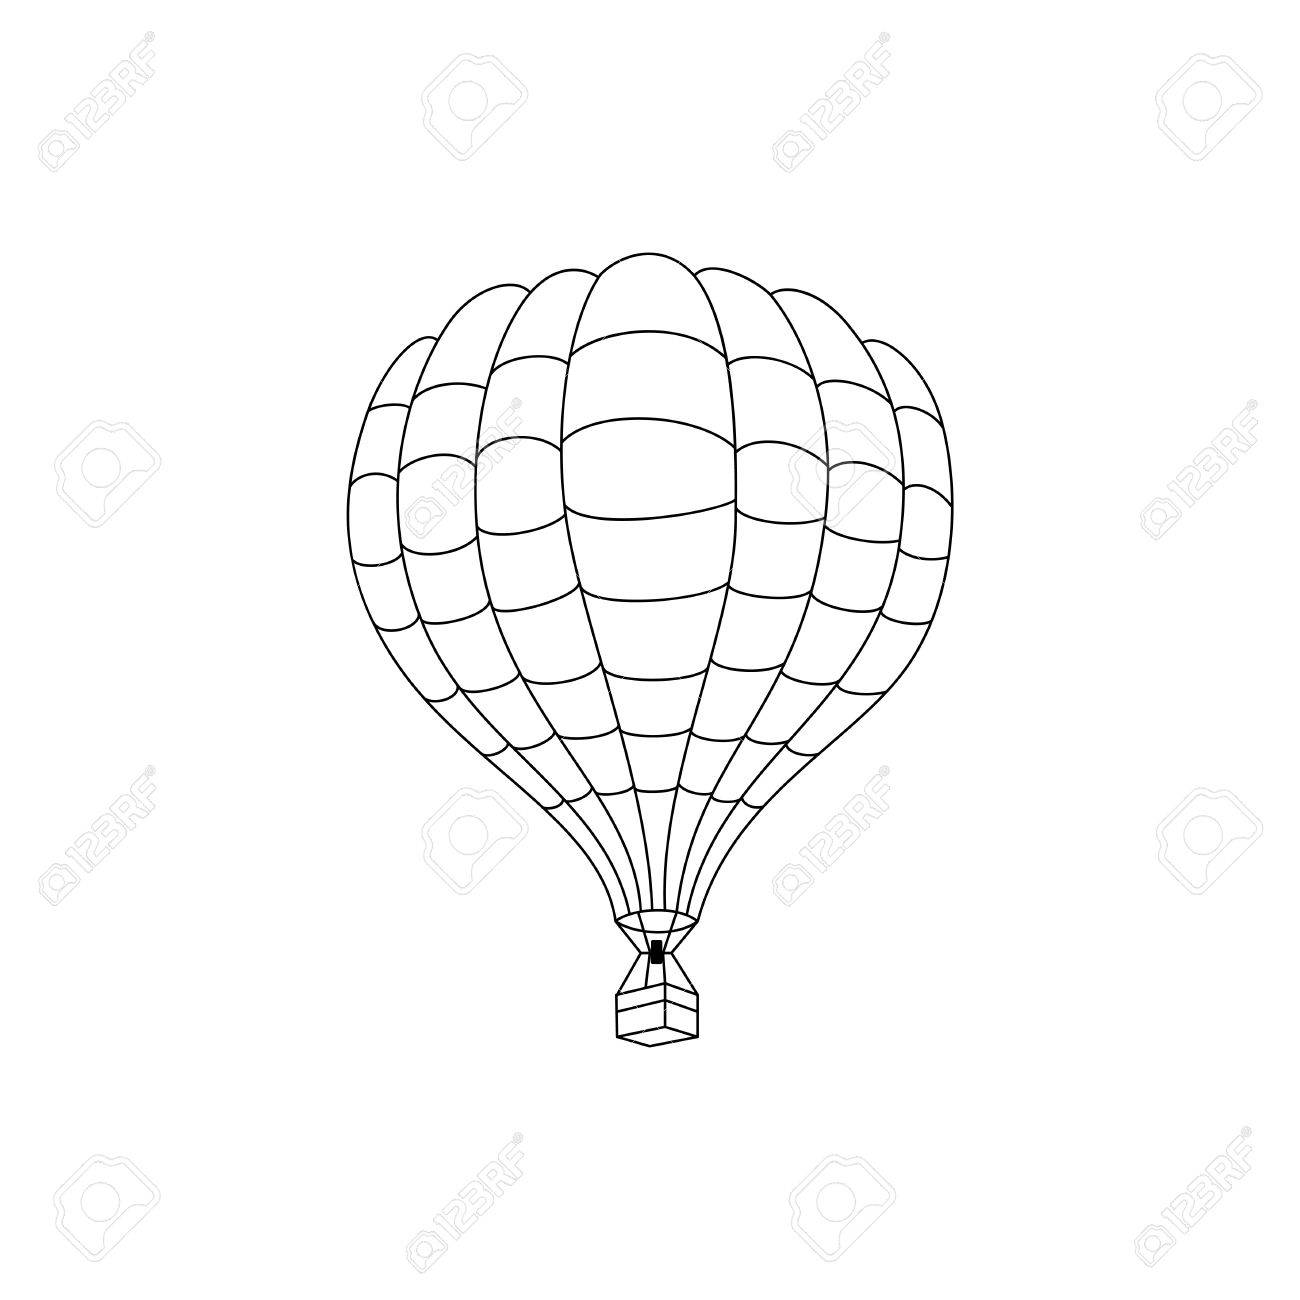 1300x1300 Vector Hot Air Balloon Outline Drawn. Royalty Free Cliparts